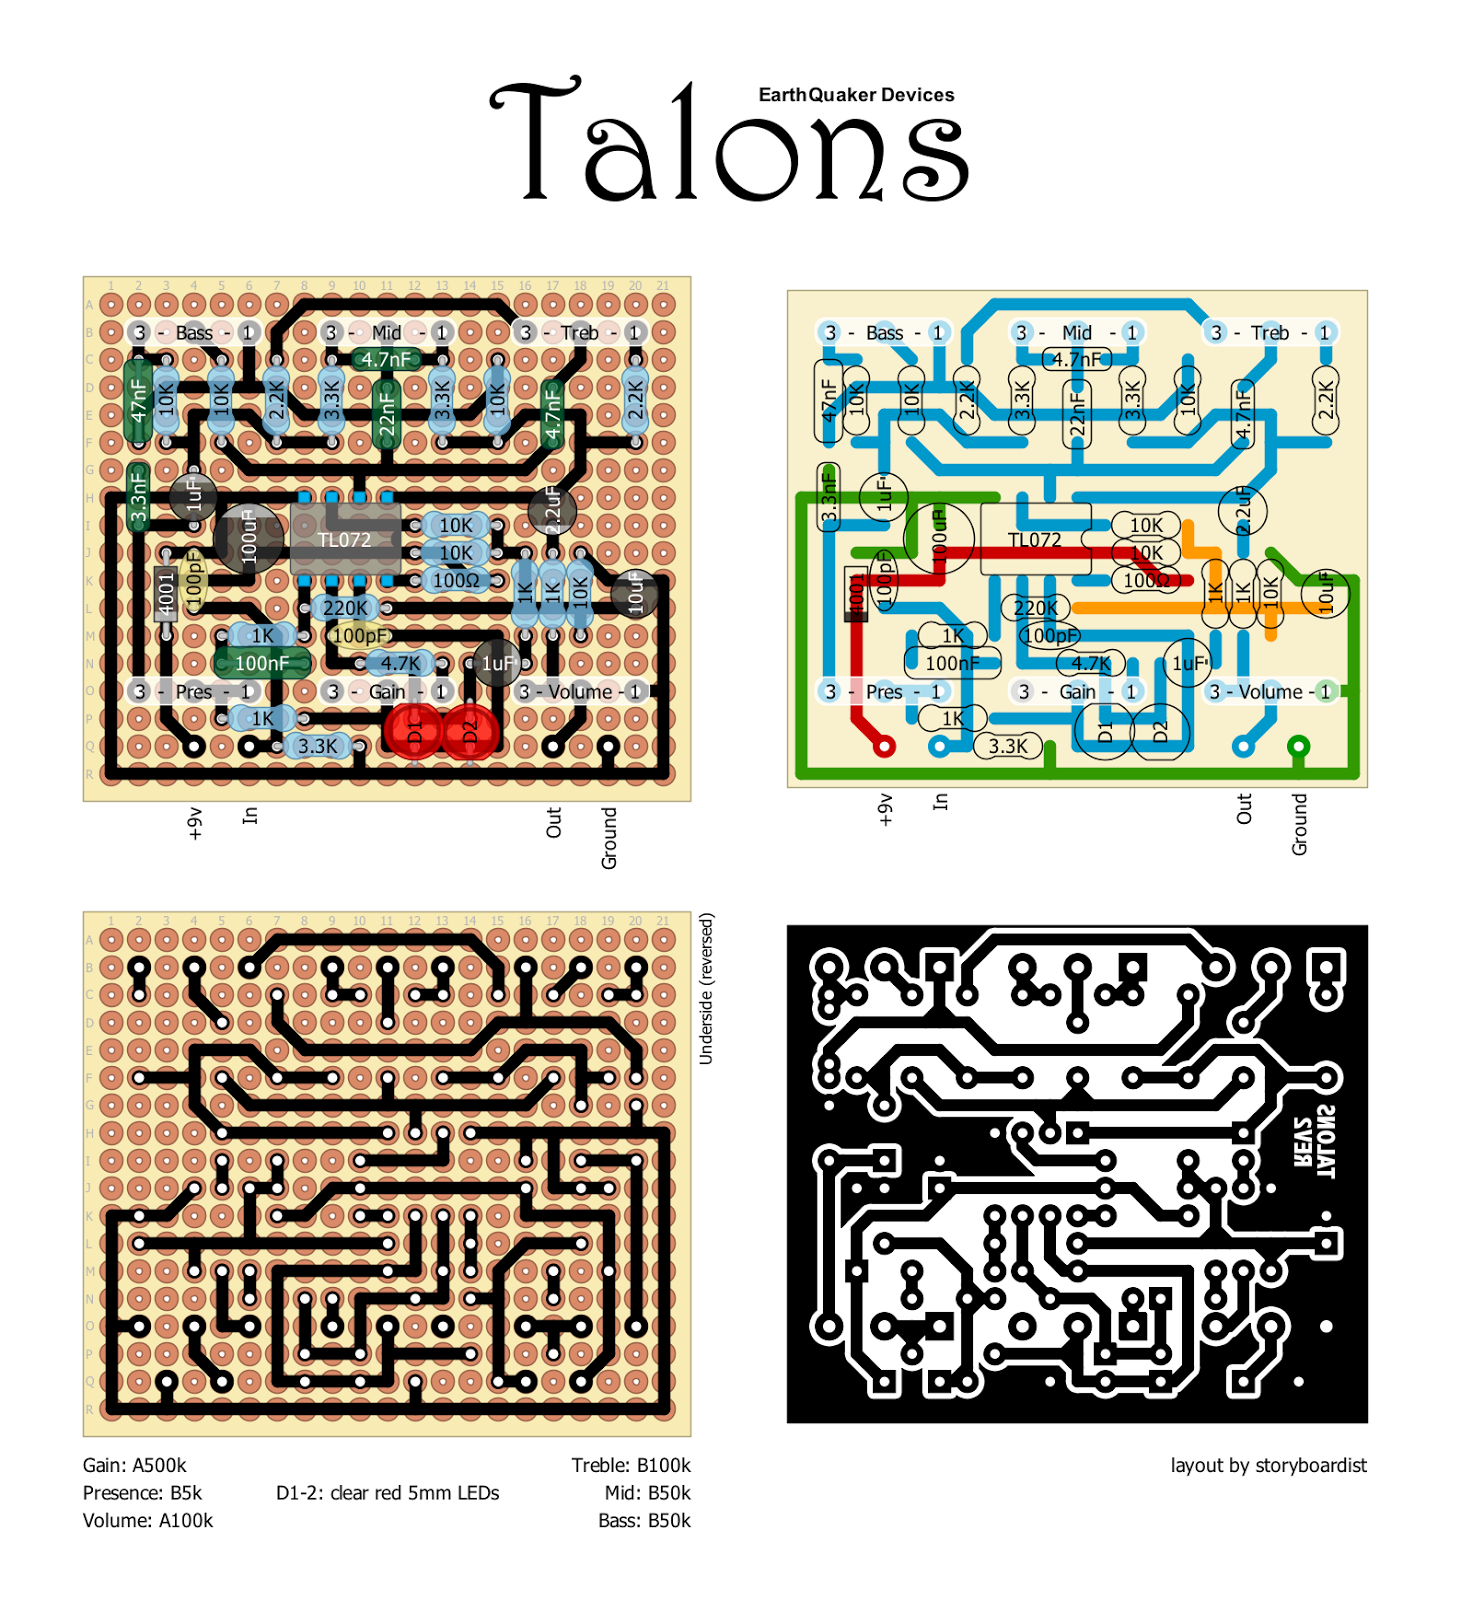 EQD%2BTalons%2B2 Cool Review About Talon Build S5